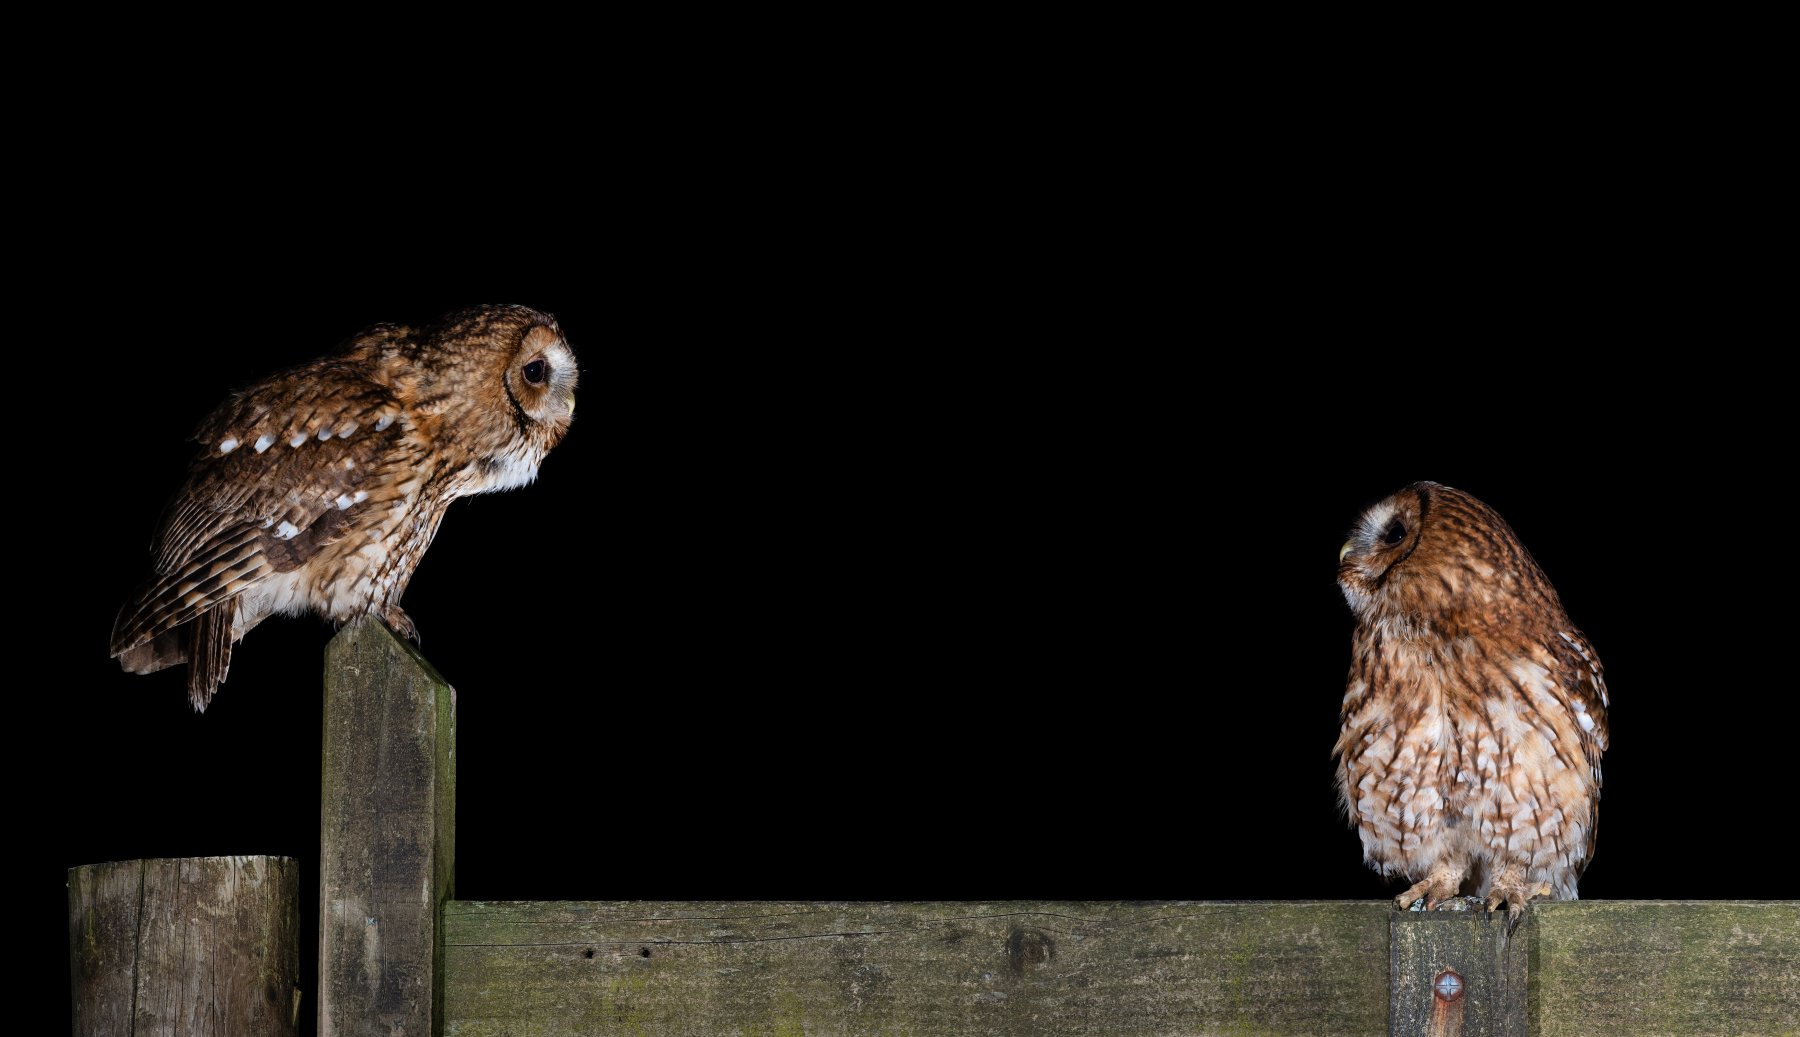 Tawny Owls by Laurence Liddy